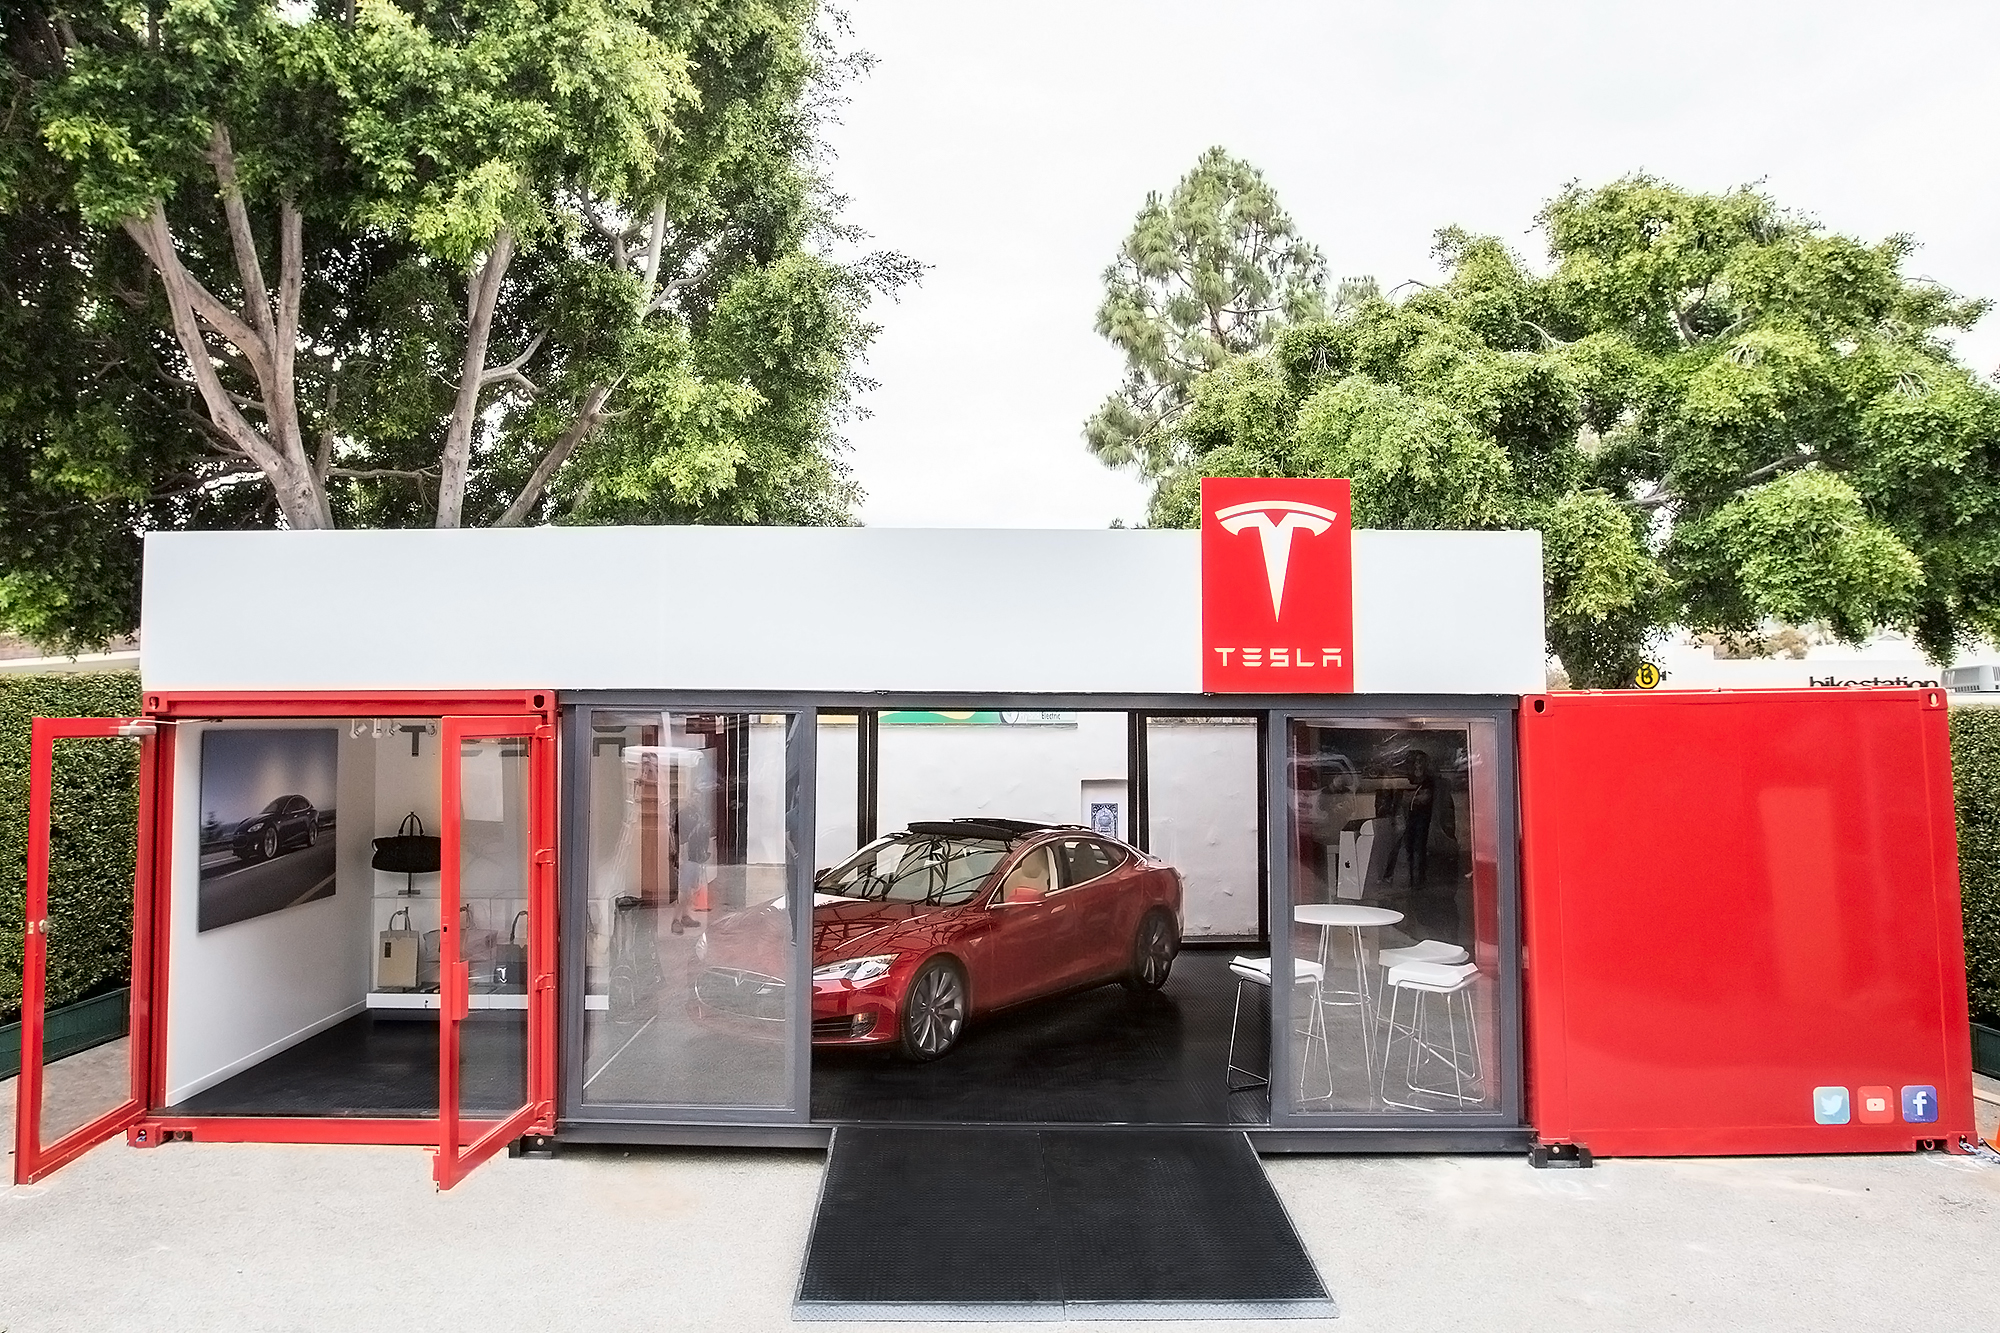 Tesla's mobile shipping container store will debut in Santa Barbara, Calif. over the Memorial Day weekend.